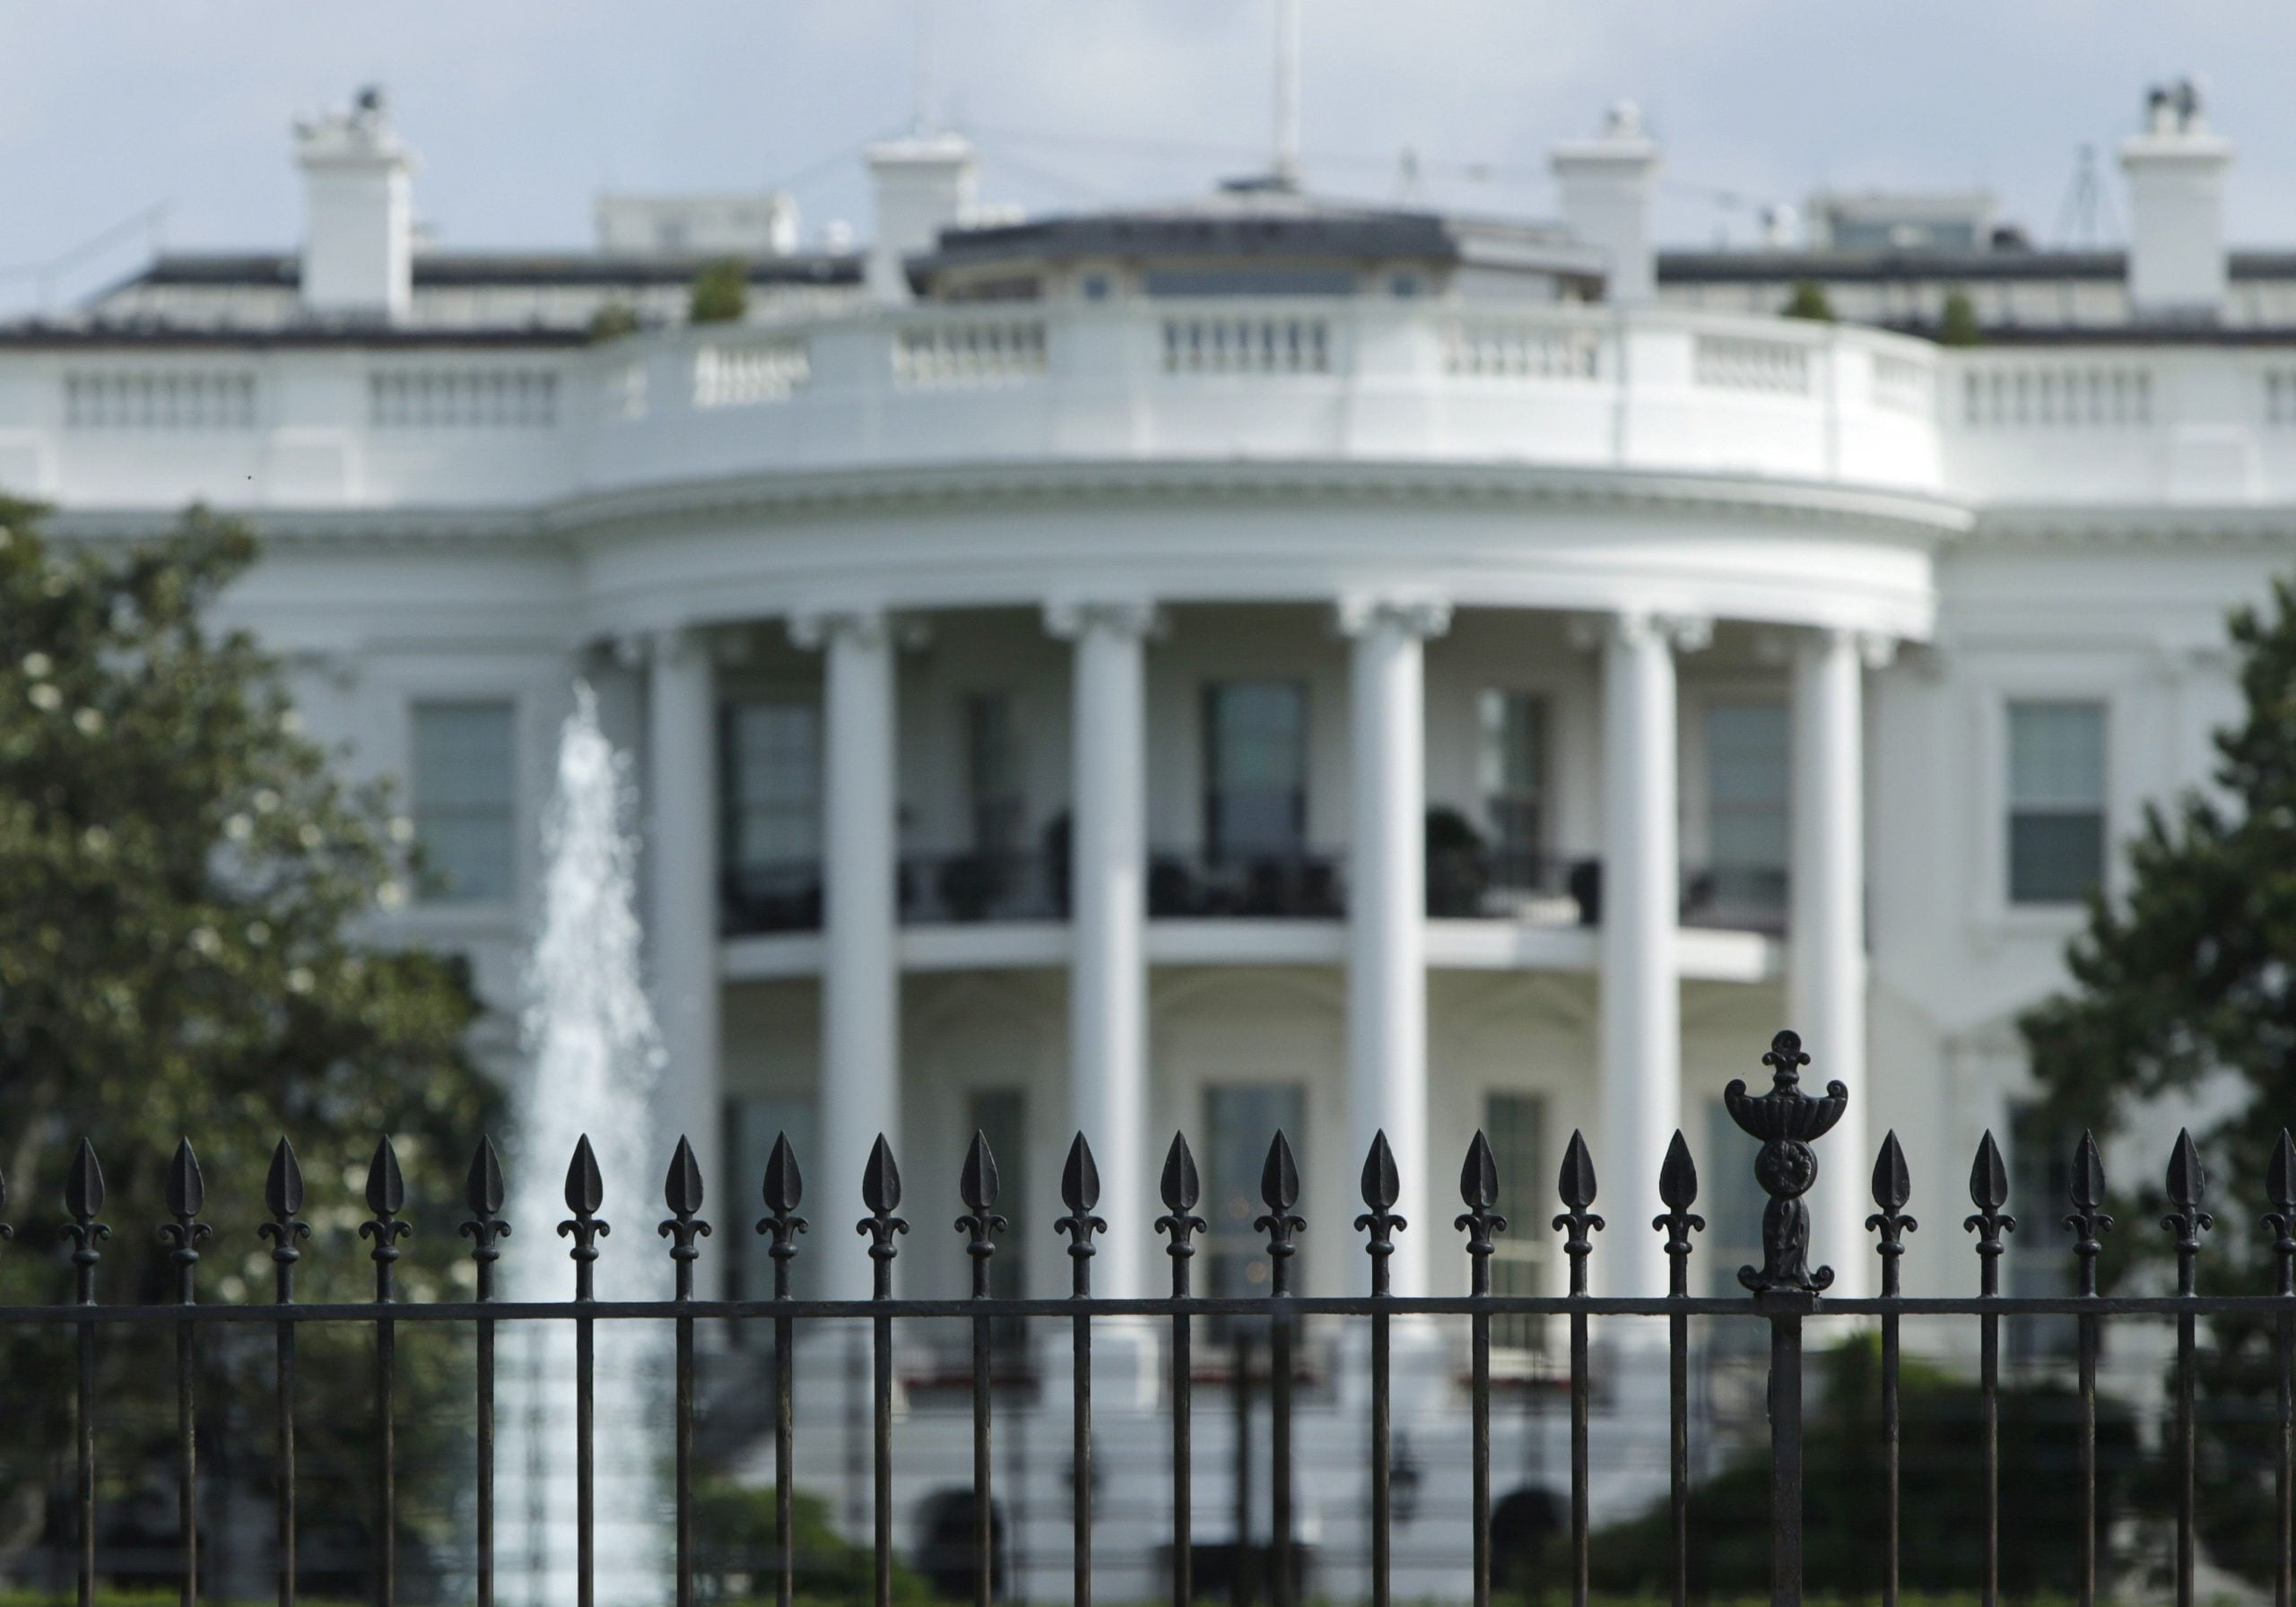 Contract worker at White House arrested on attempted first-degree murder warrant